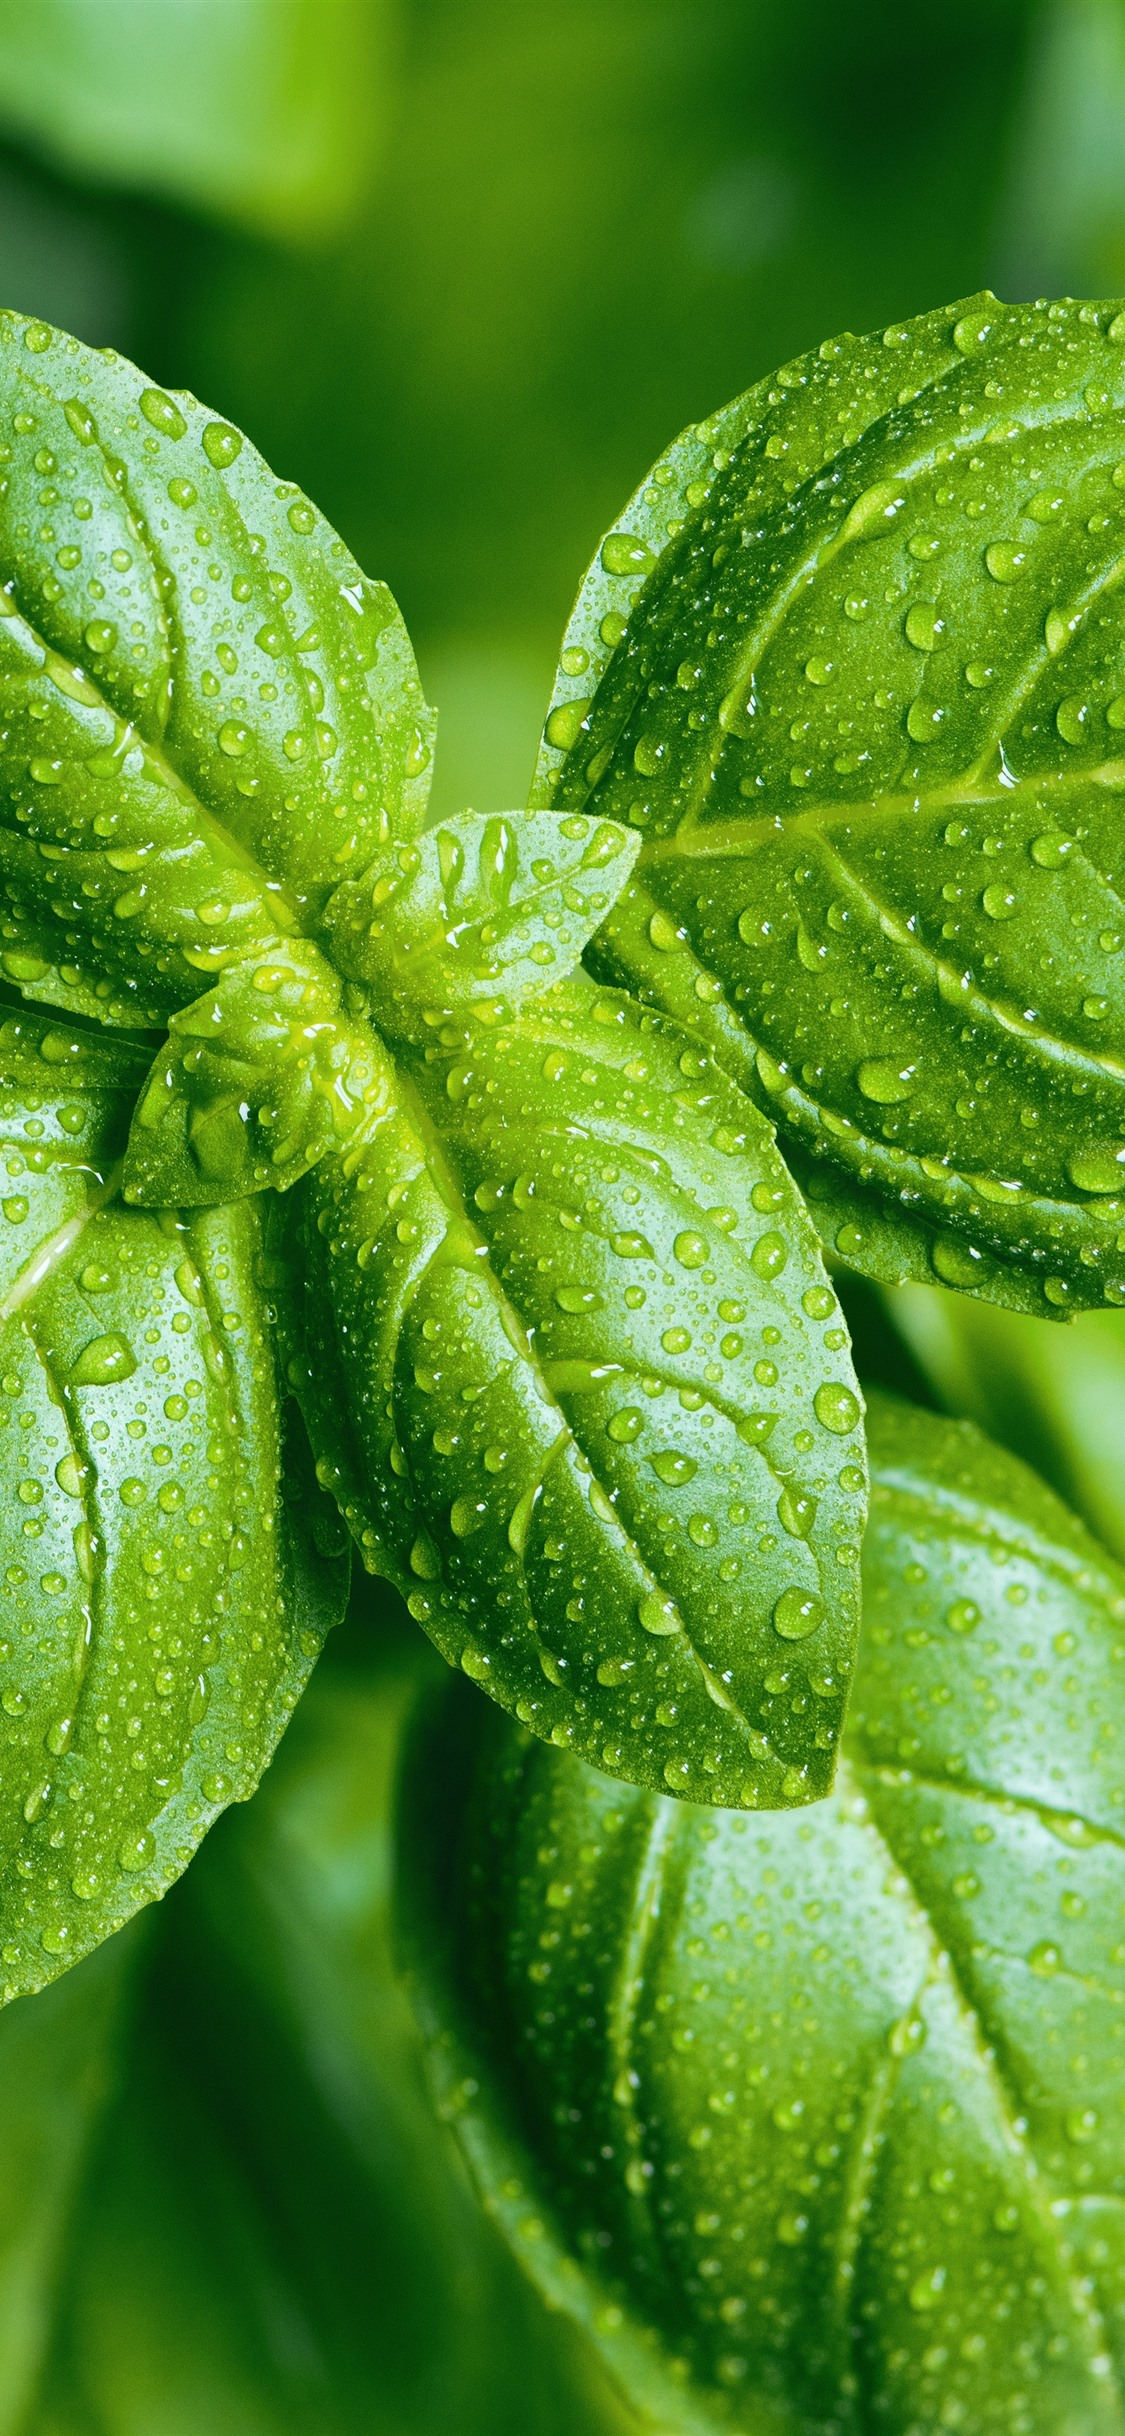 Green Foliage Close Up Water Droplets 1242x2688 Iphone Xs